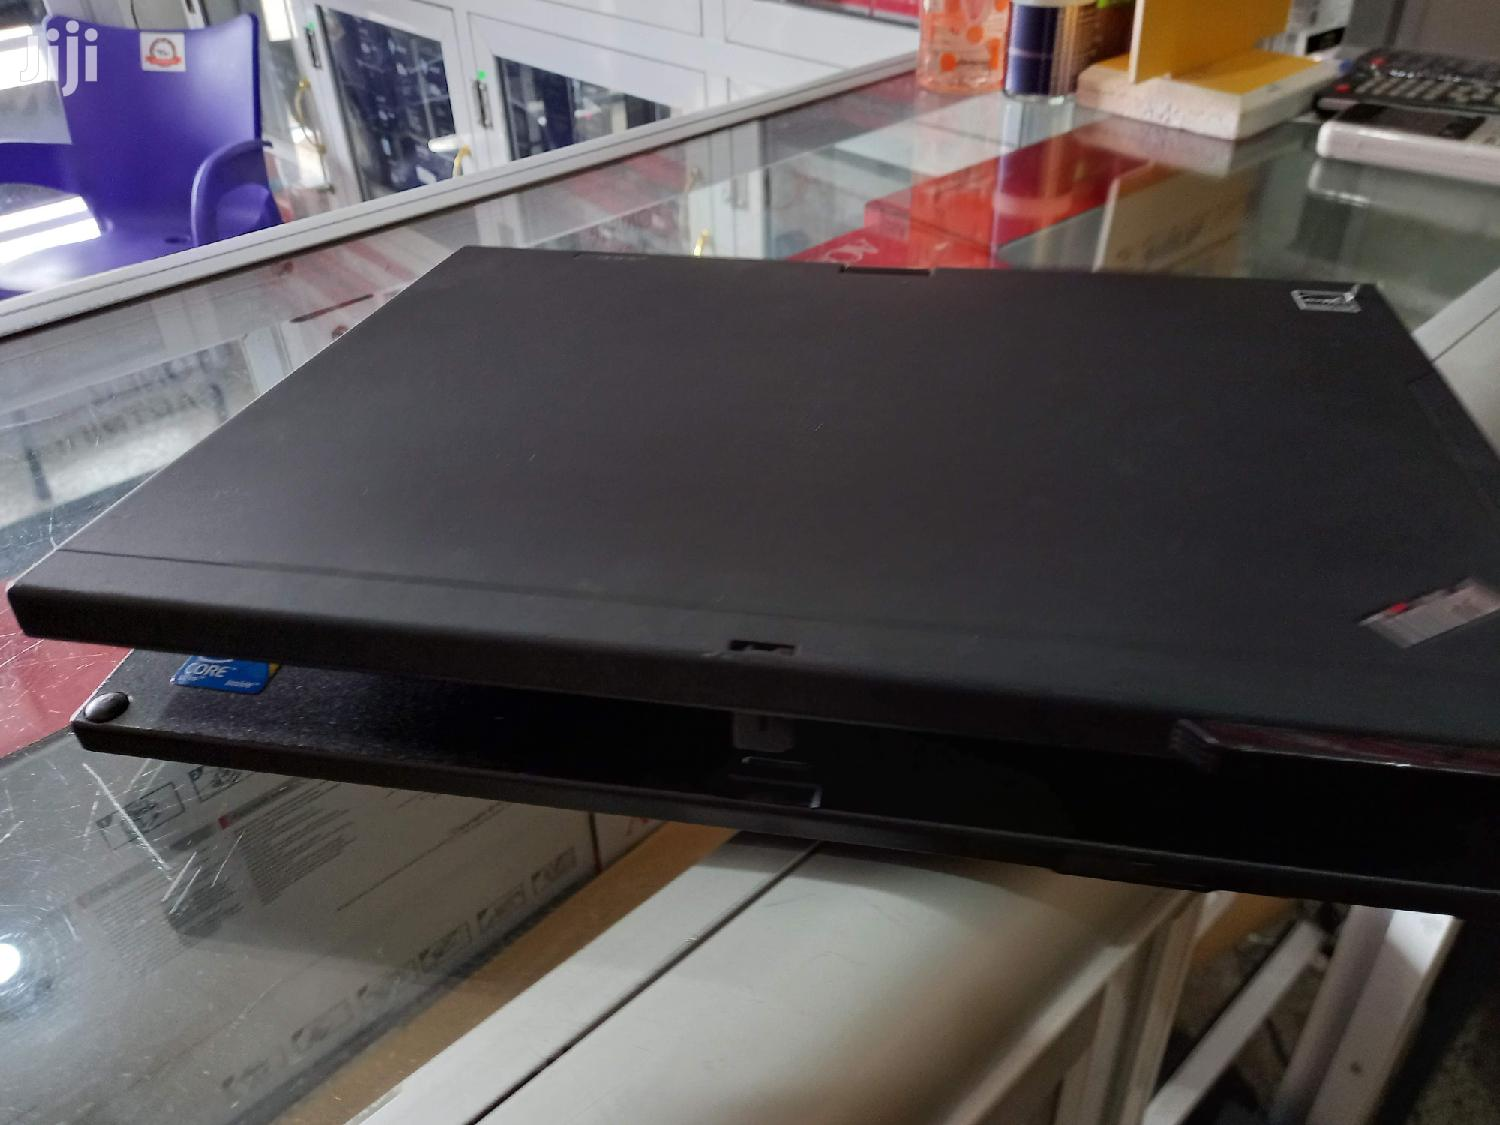 Laptop Lenovo ThinkPad X200 4GB Intel Core 2 Duo HDD 160GB | Laptops & Computers for sale in Odorkor, Greater Accra, Ghana